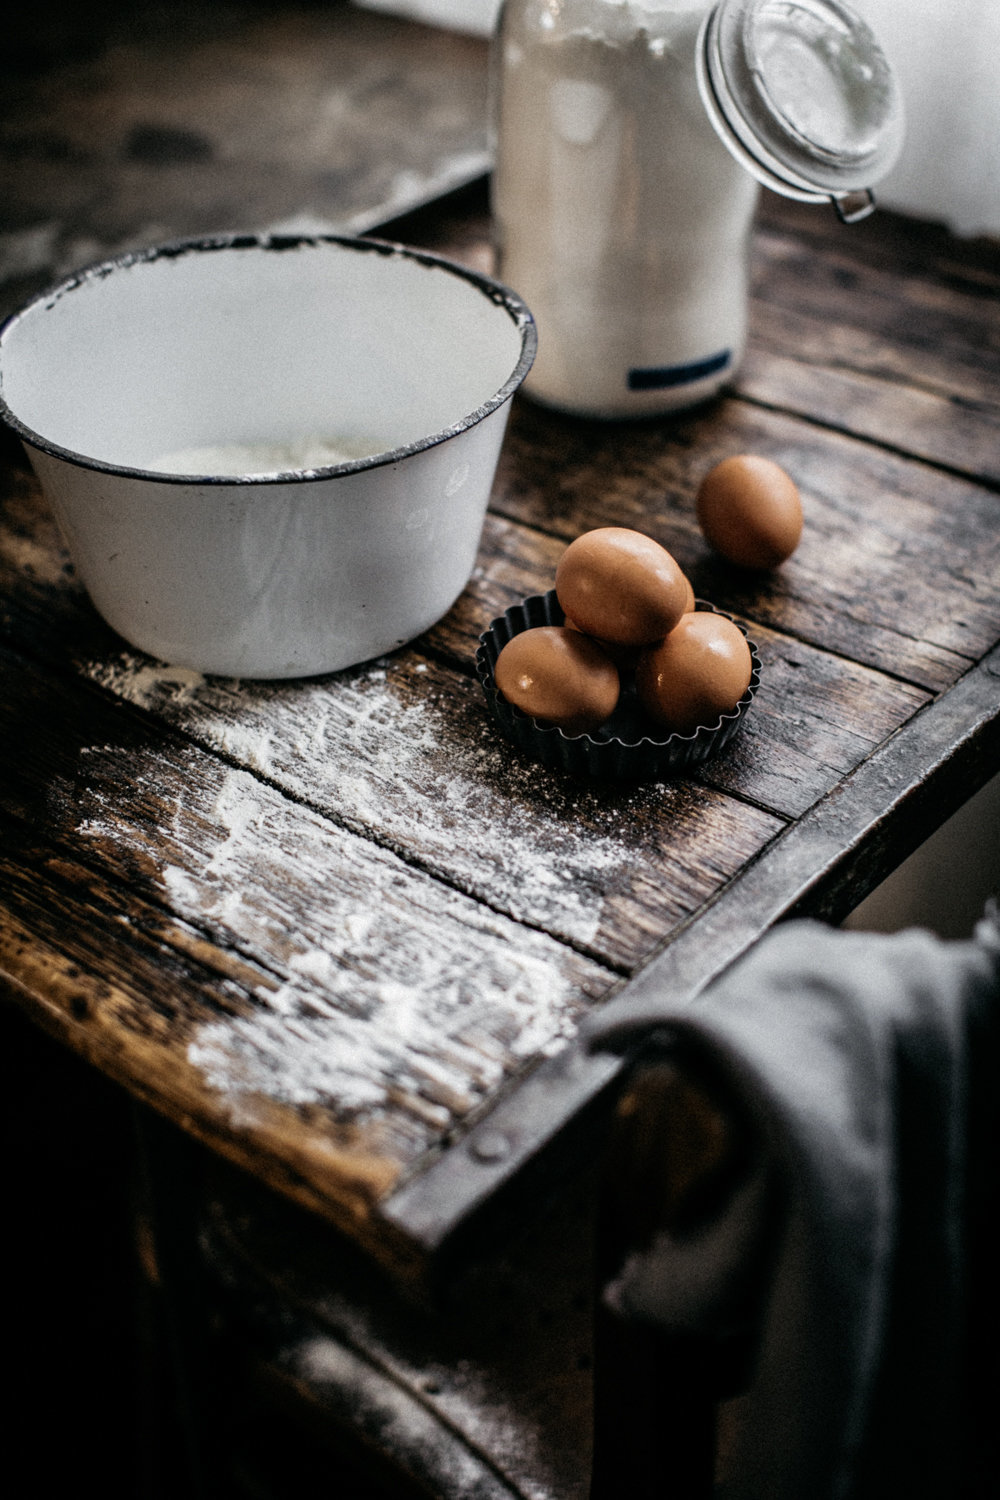 Flour & Eggs Food Photography | Back light - Anisa Sabet - Photographer